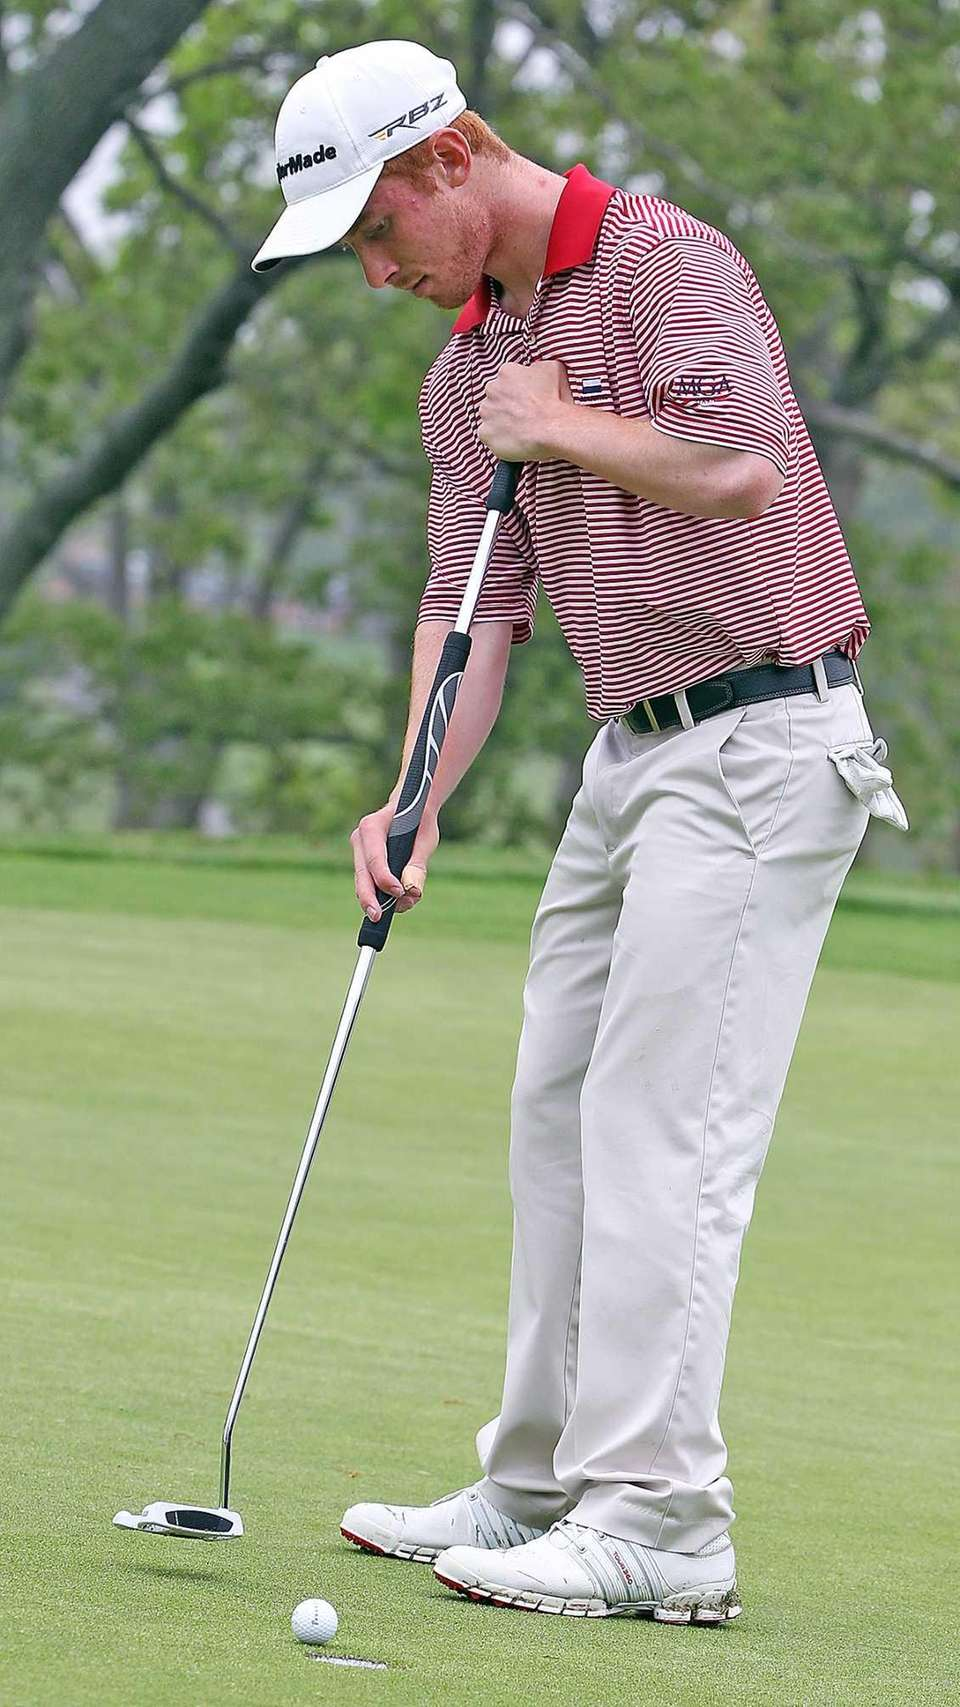 Farmingdale's Matt Lowe putts the ball during the